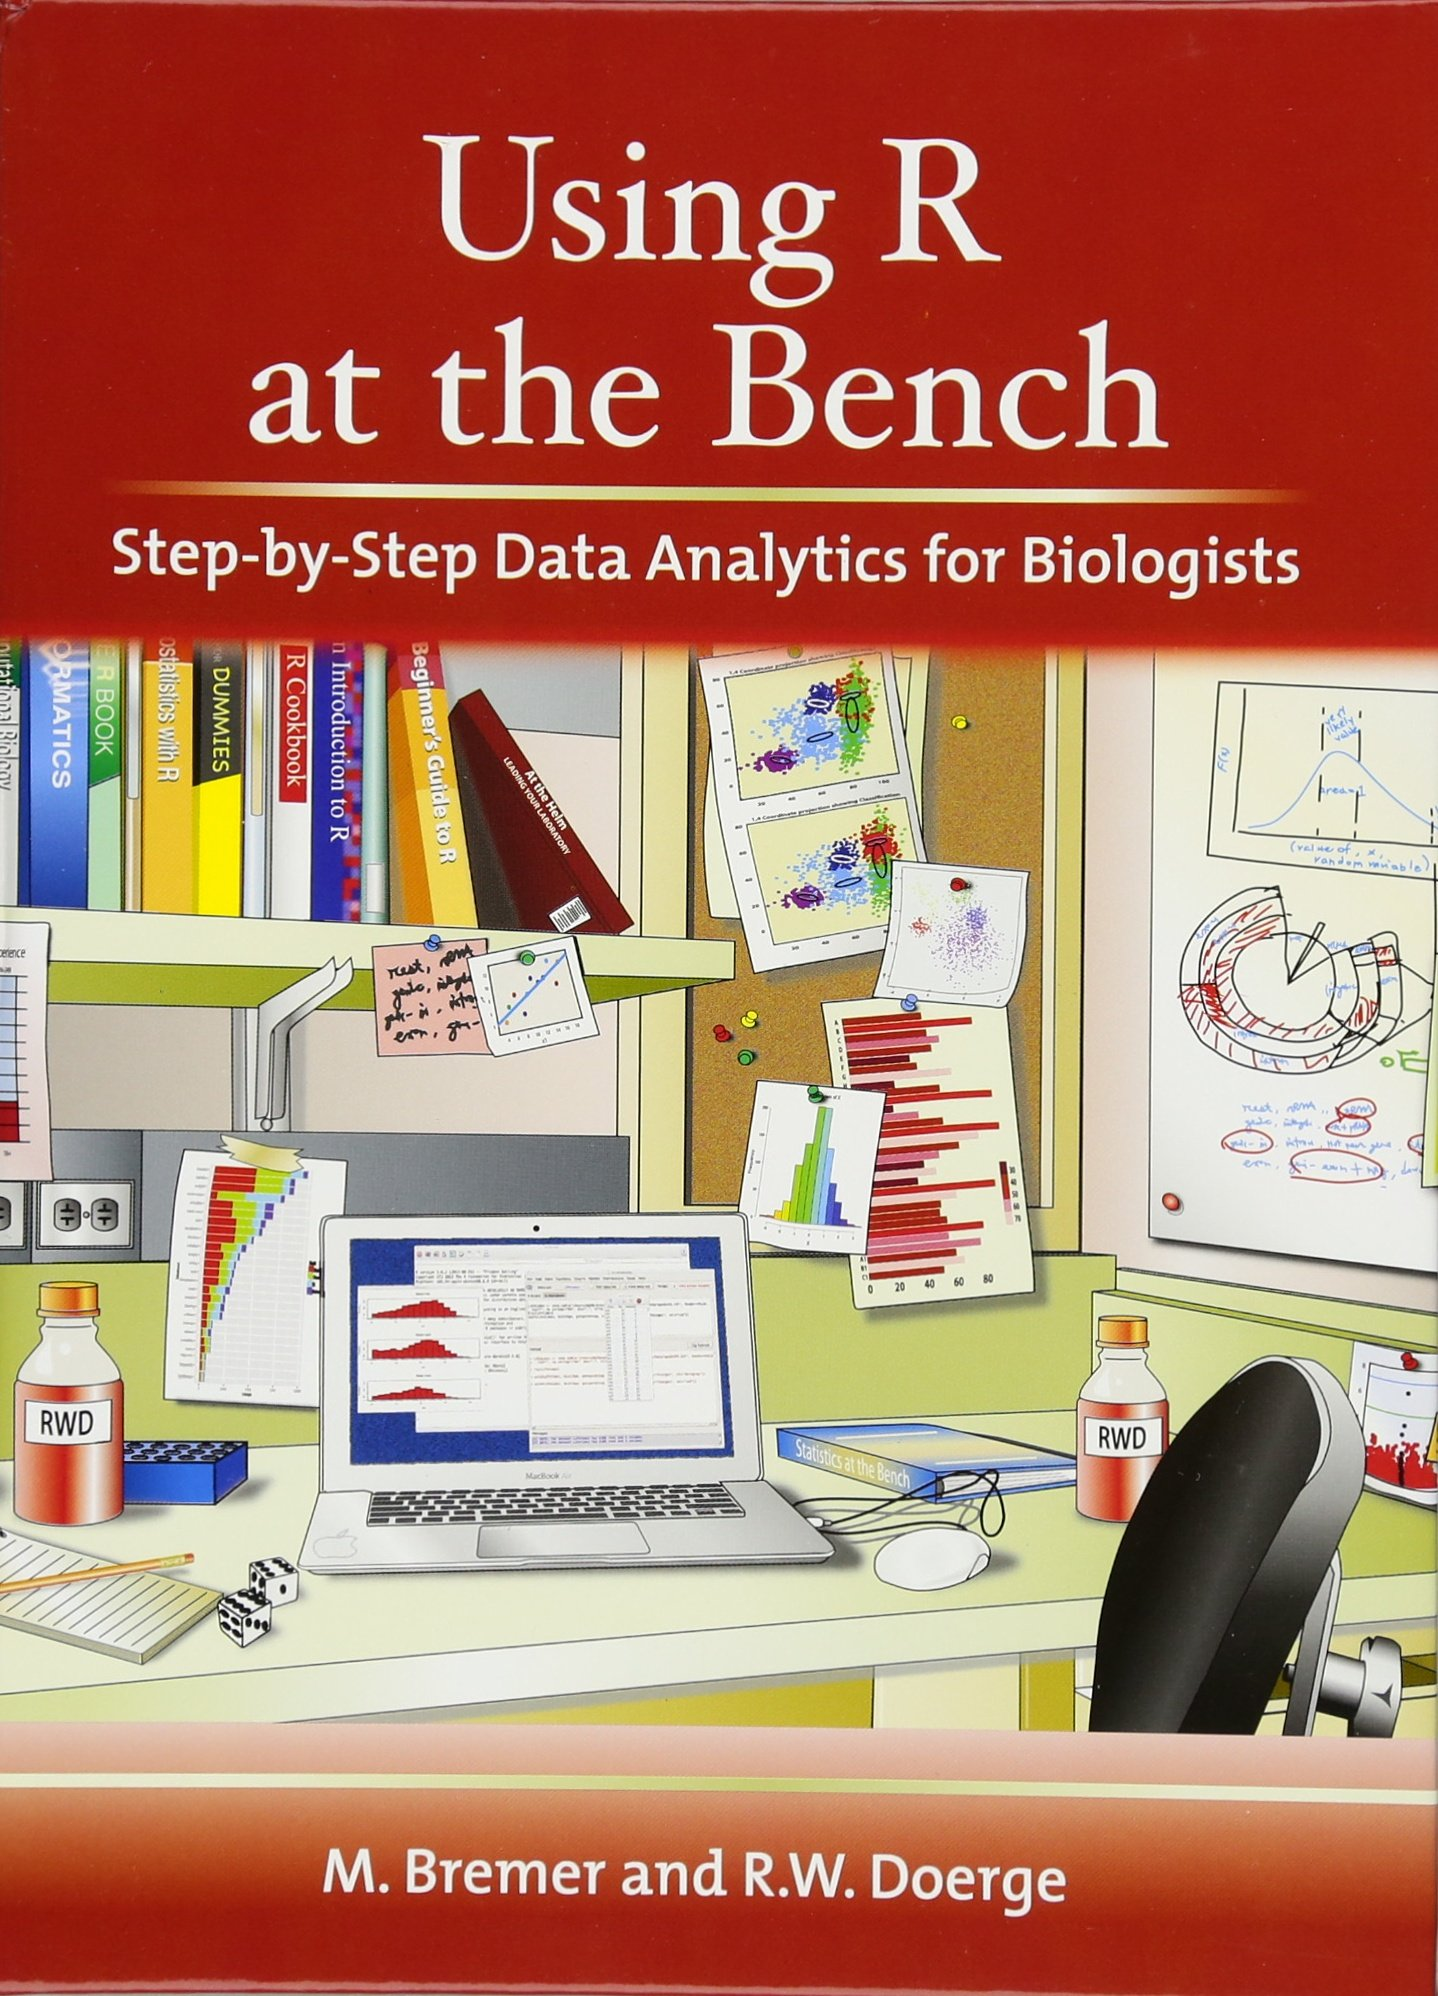 Using R at the Bench: Step-by-Step Data Analytics for Biologists by Cold Spring Harbor Laboratory Press